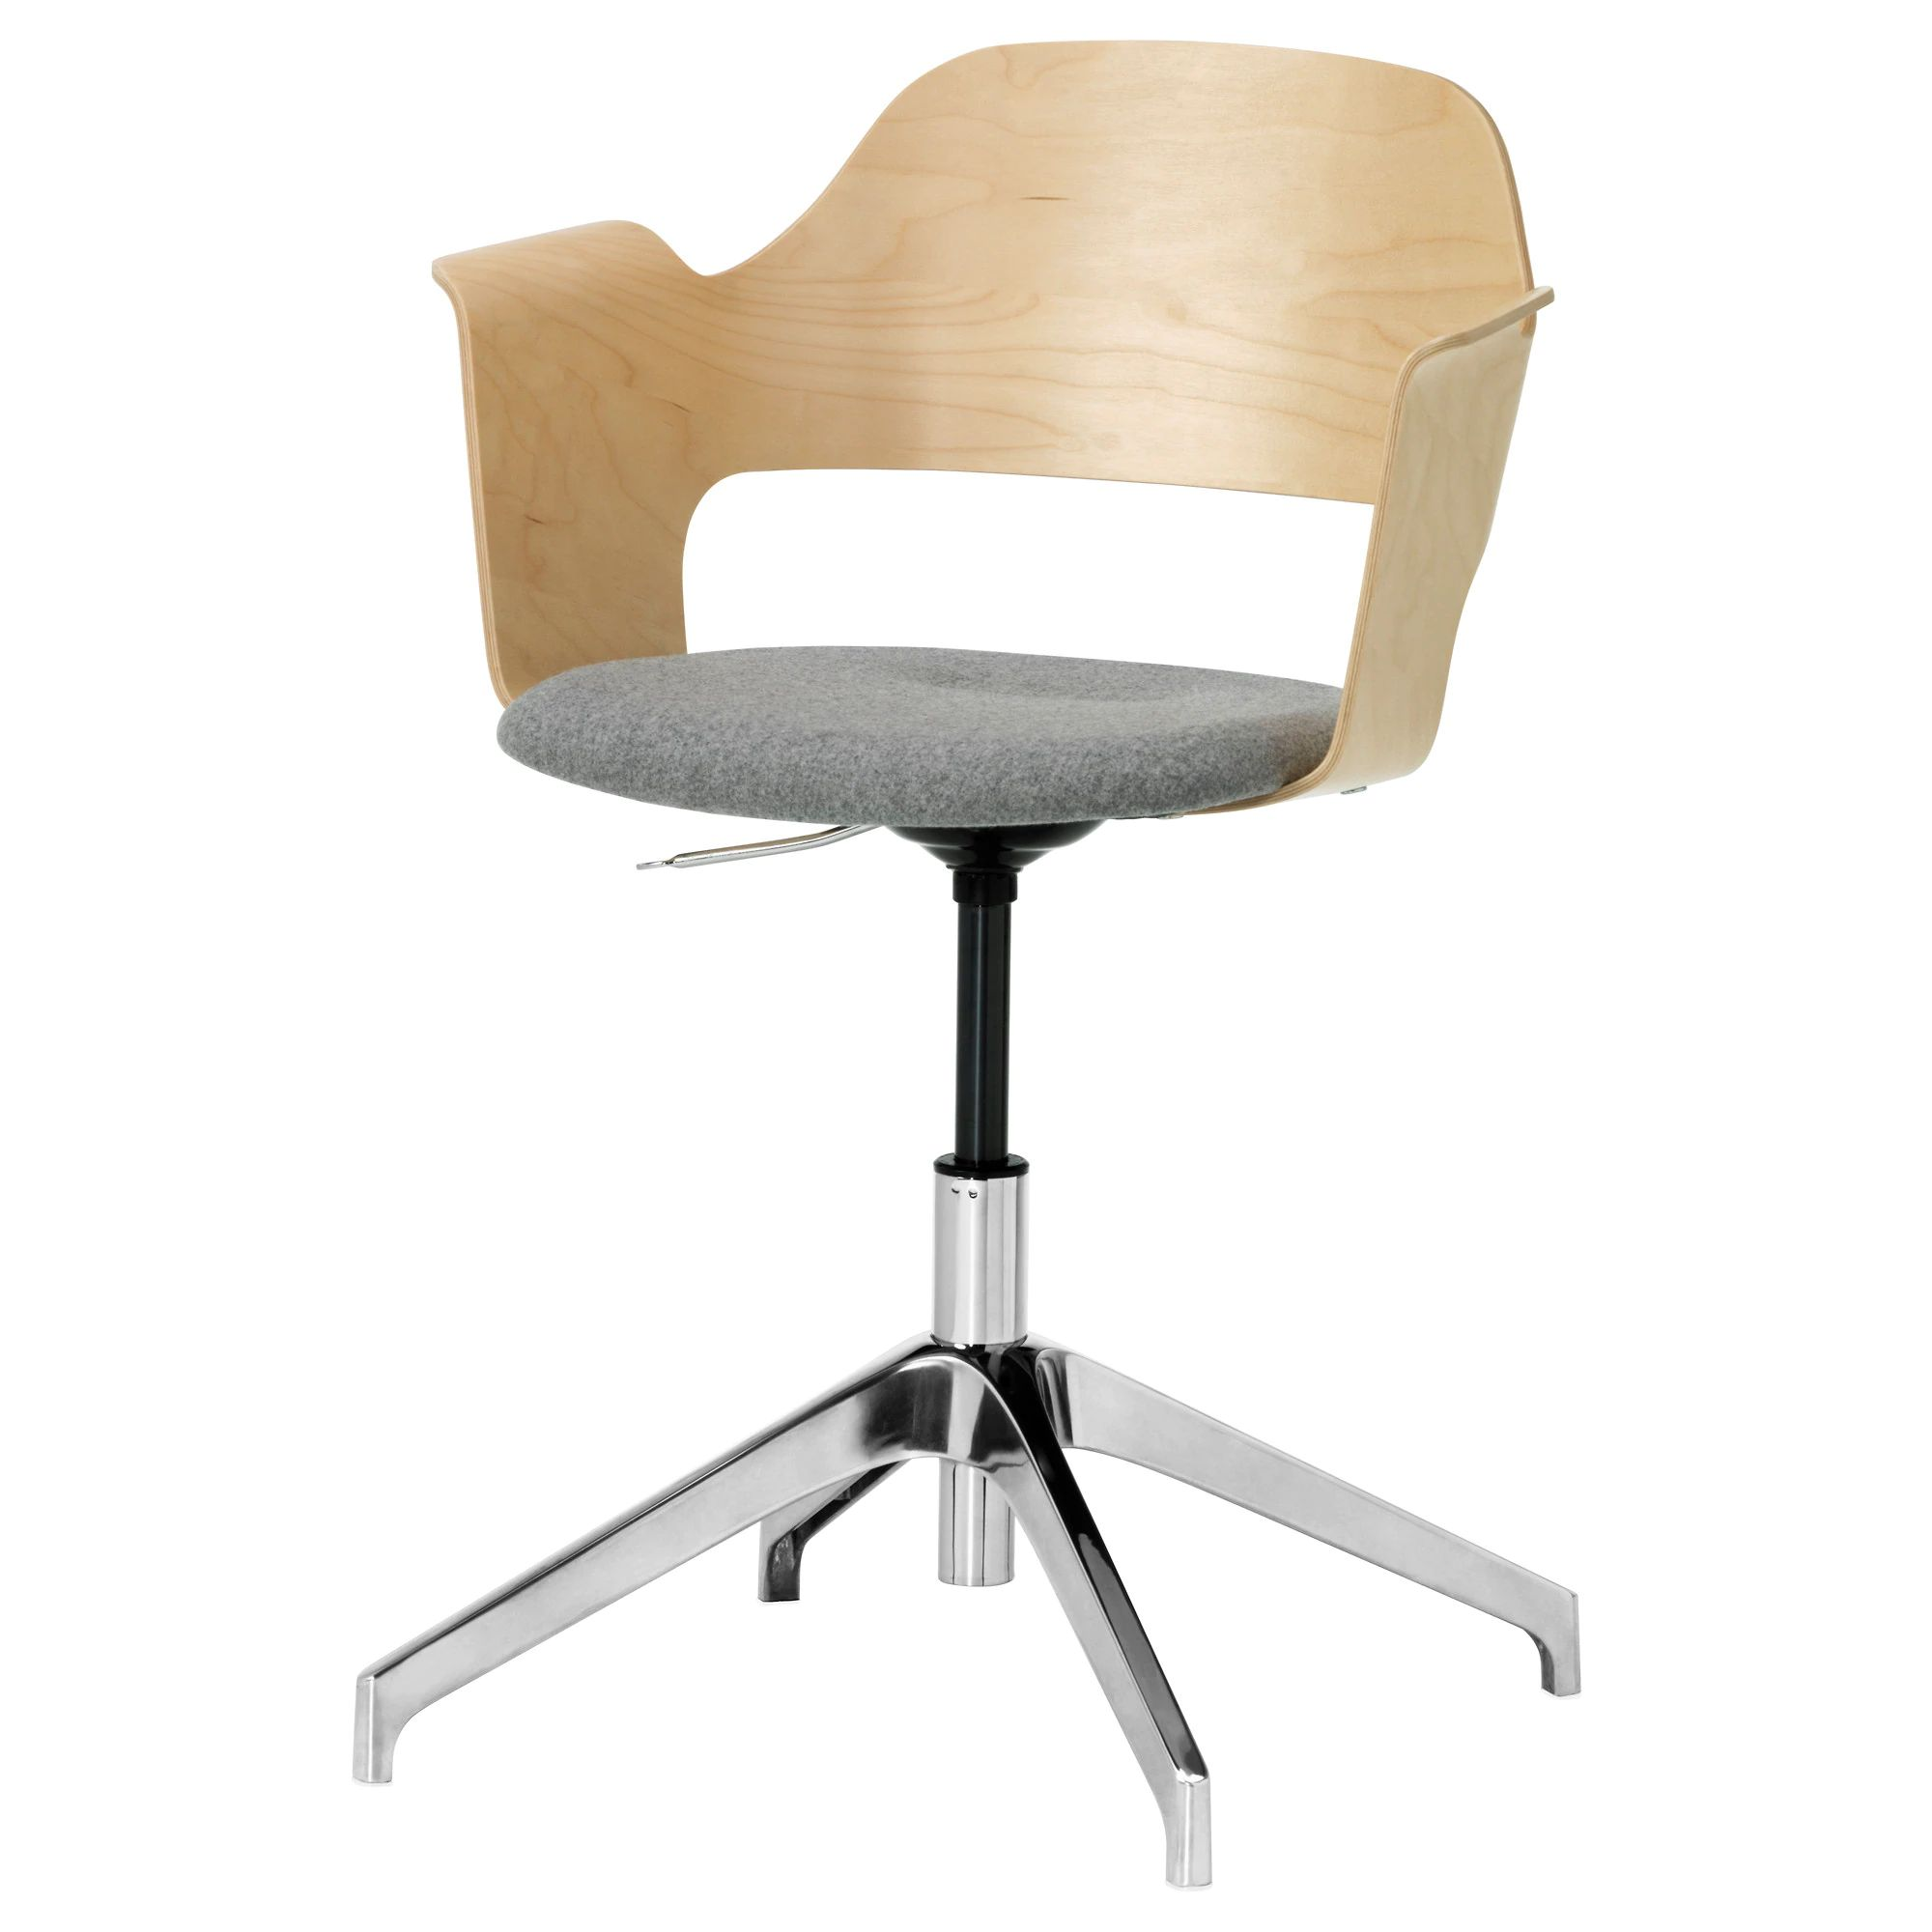 Fj llberget conference chair birch veneer ullevi gray medium gray gray tested for 242